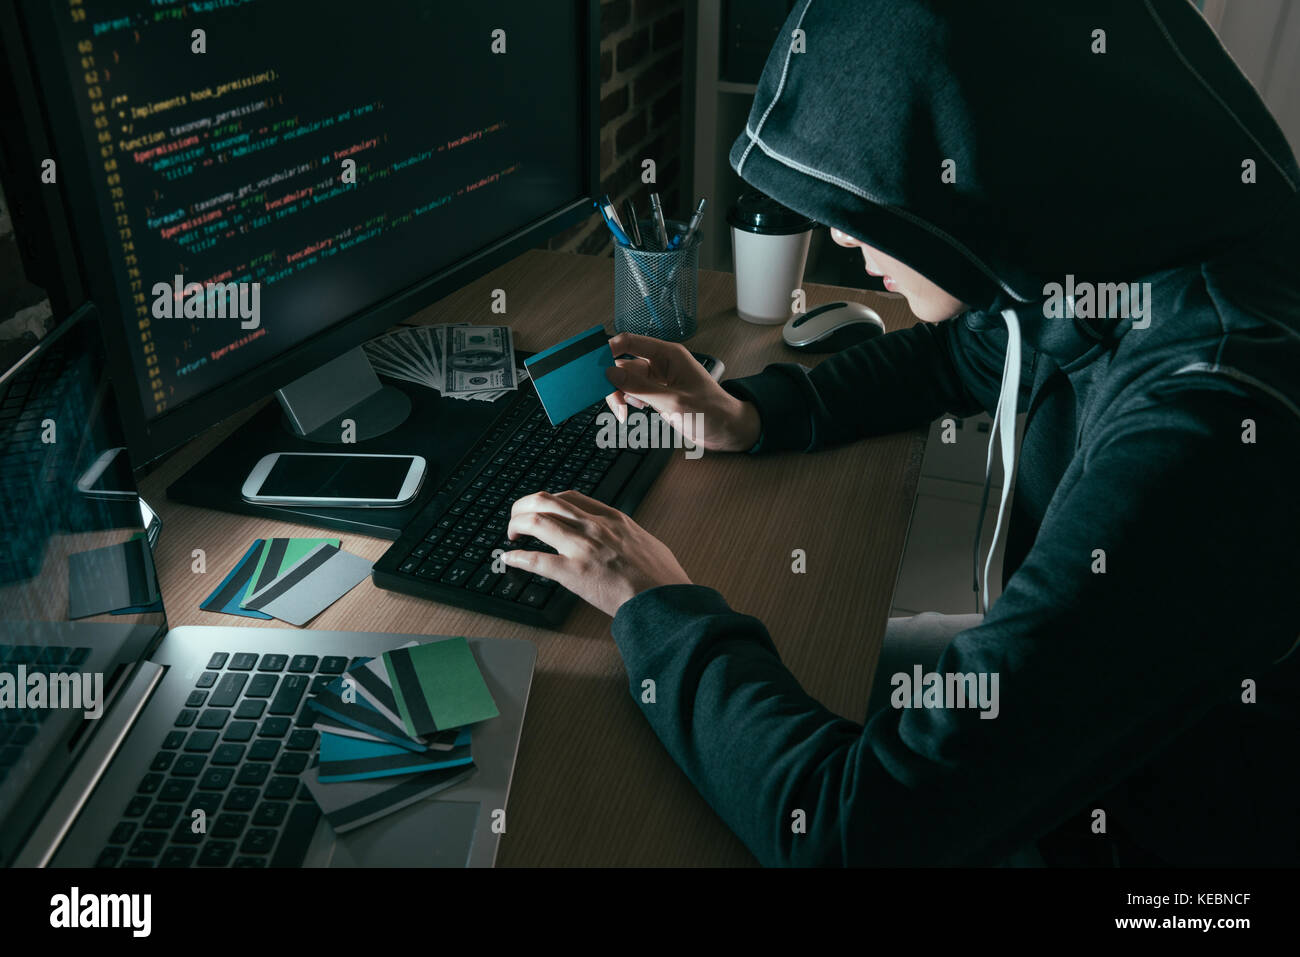 high angle view photo of hacker using computer online system stolen brushing credit card. Stock Photo